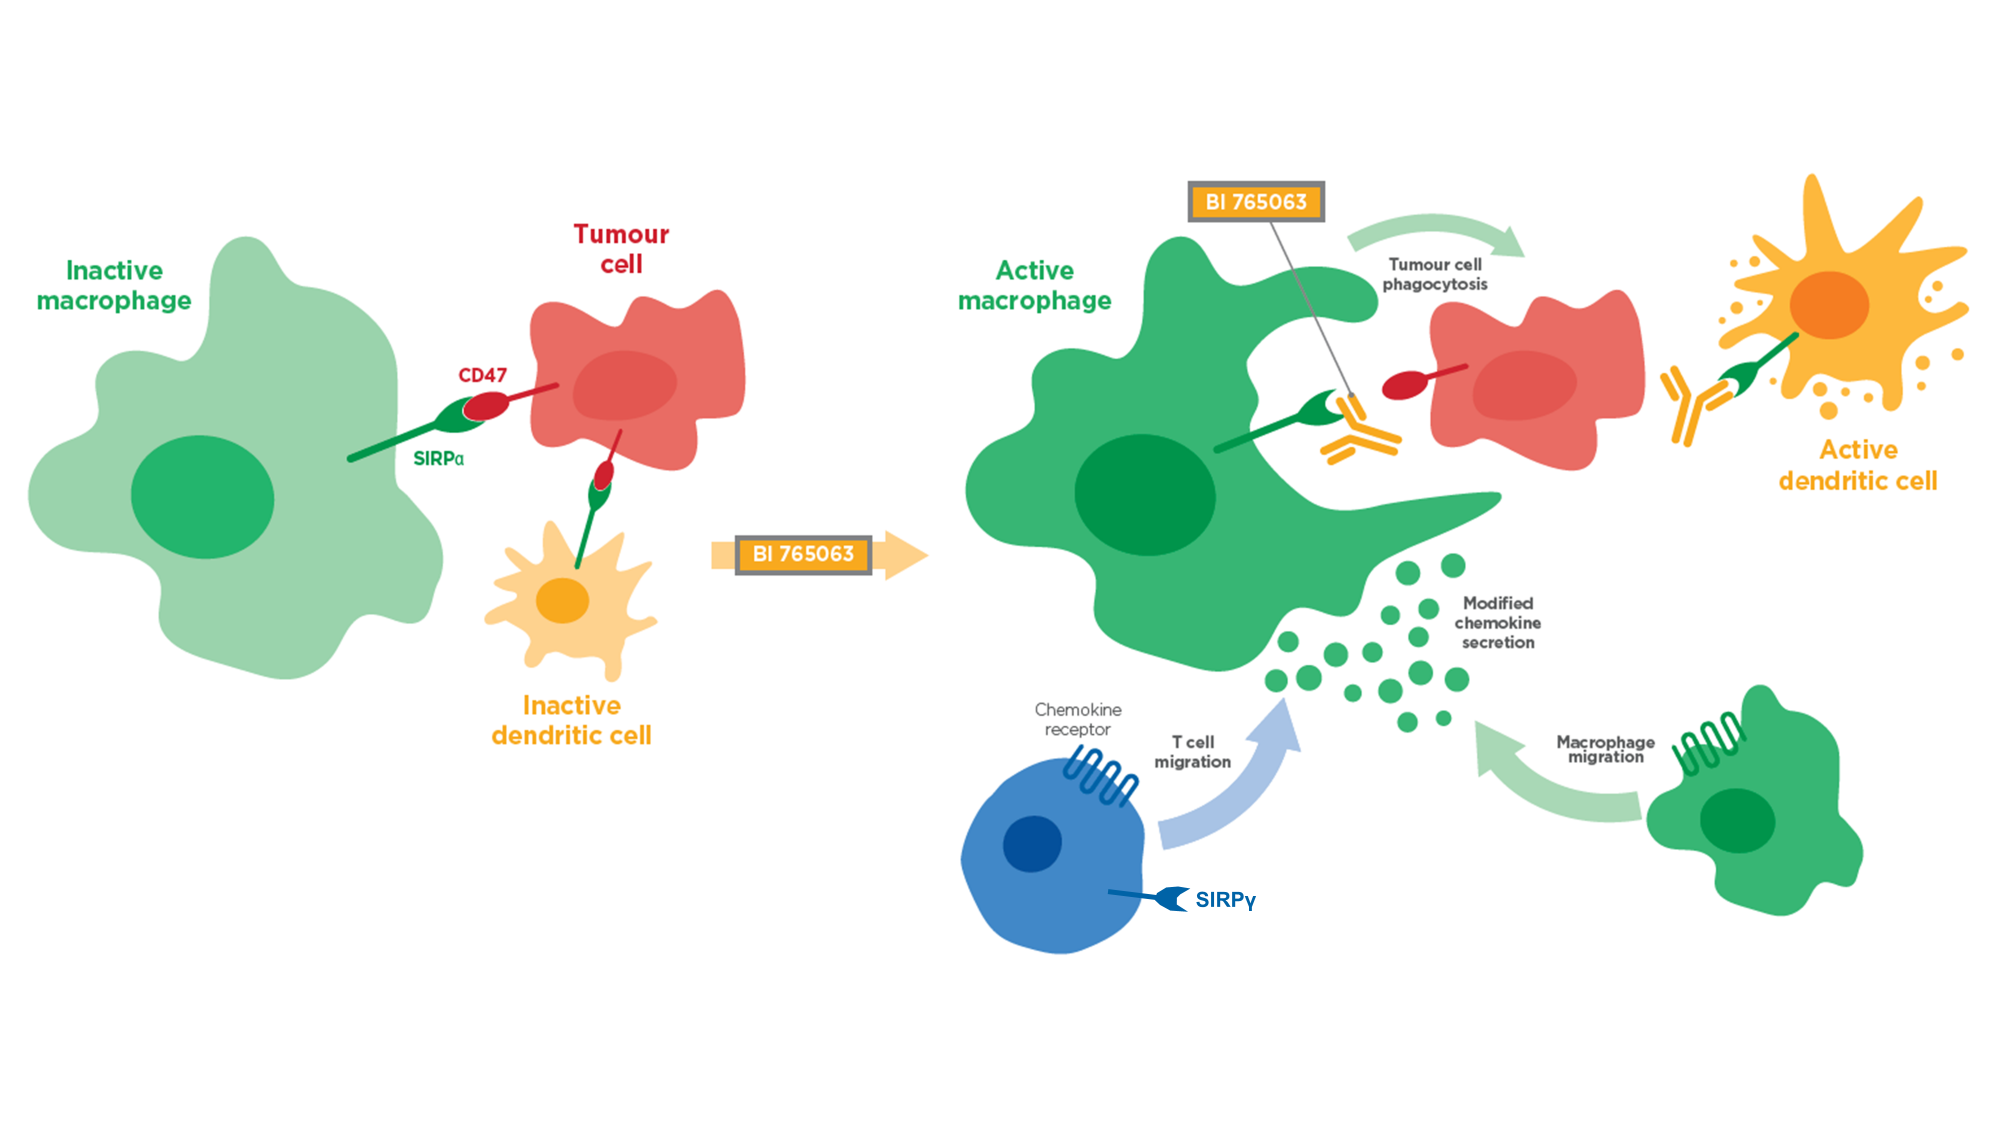 SIRPα antagonist mechanism of action